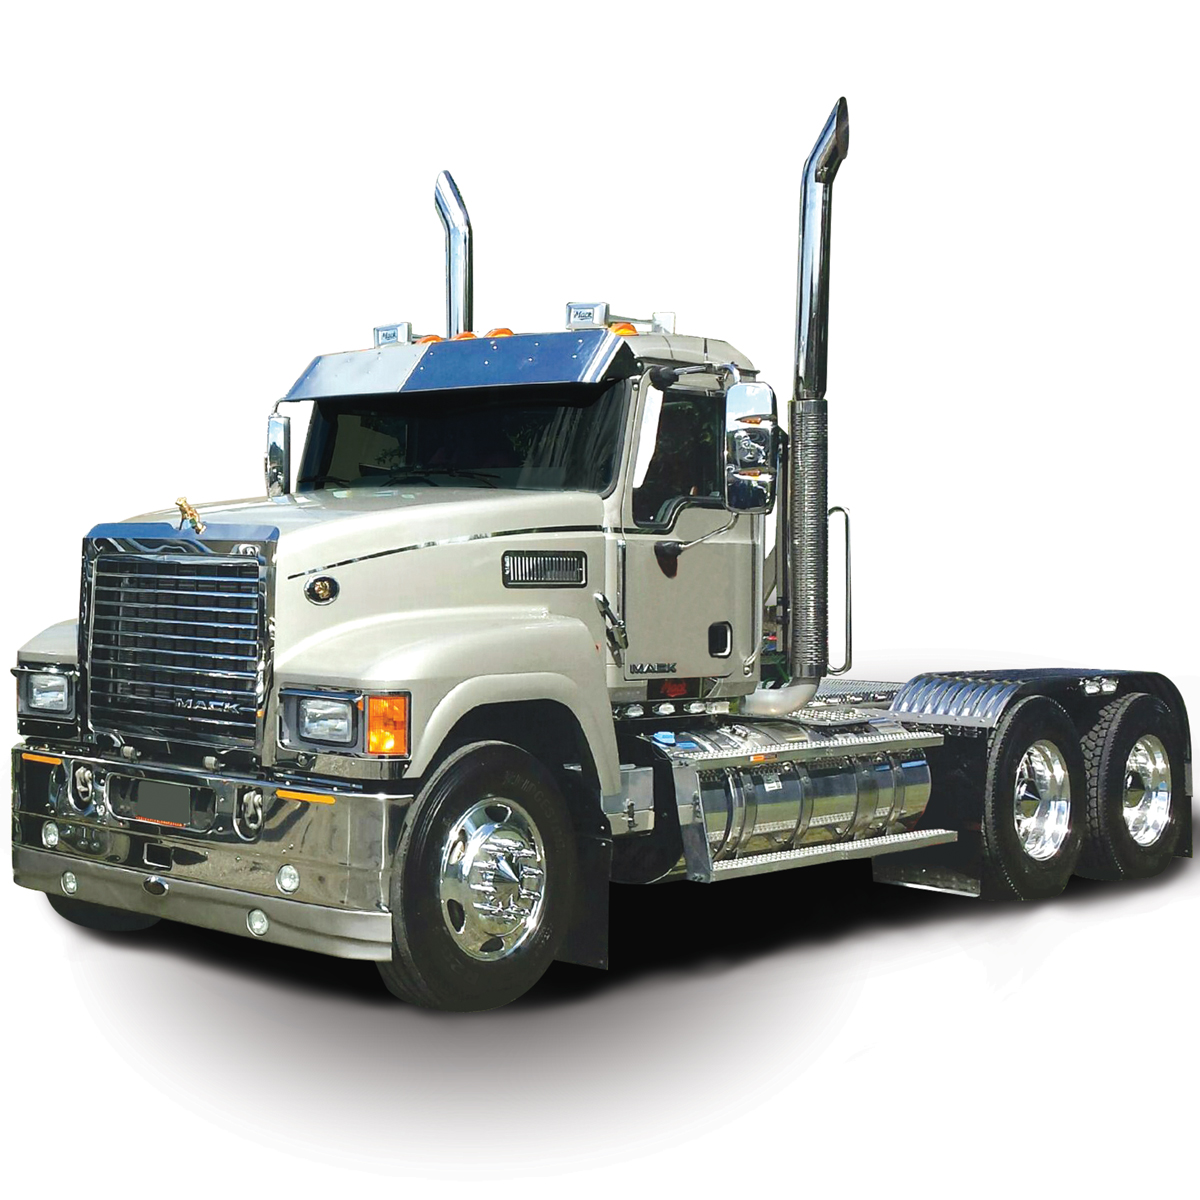 Mack - Browse by truck brands